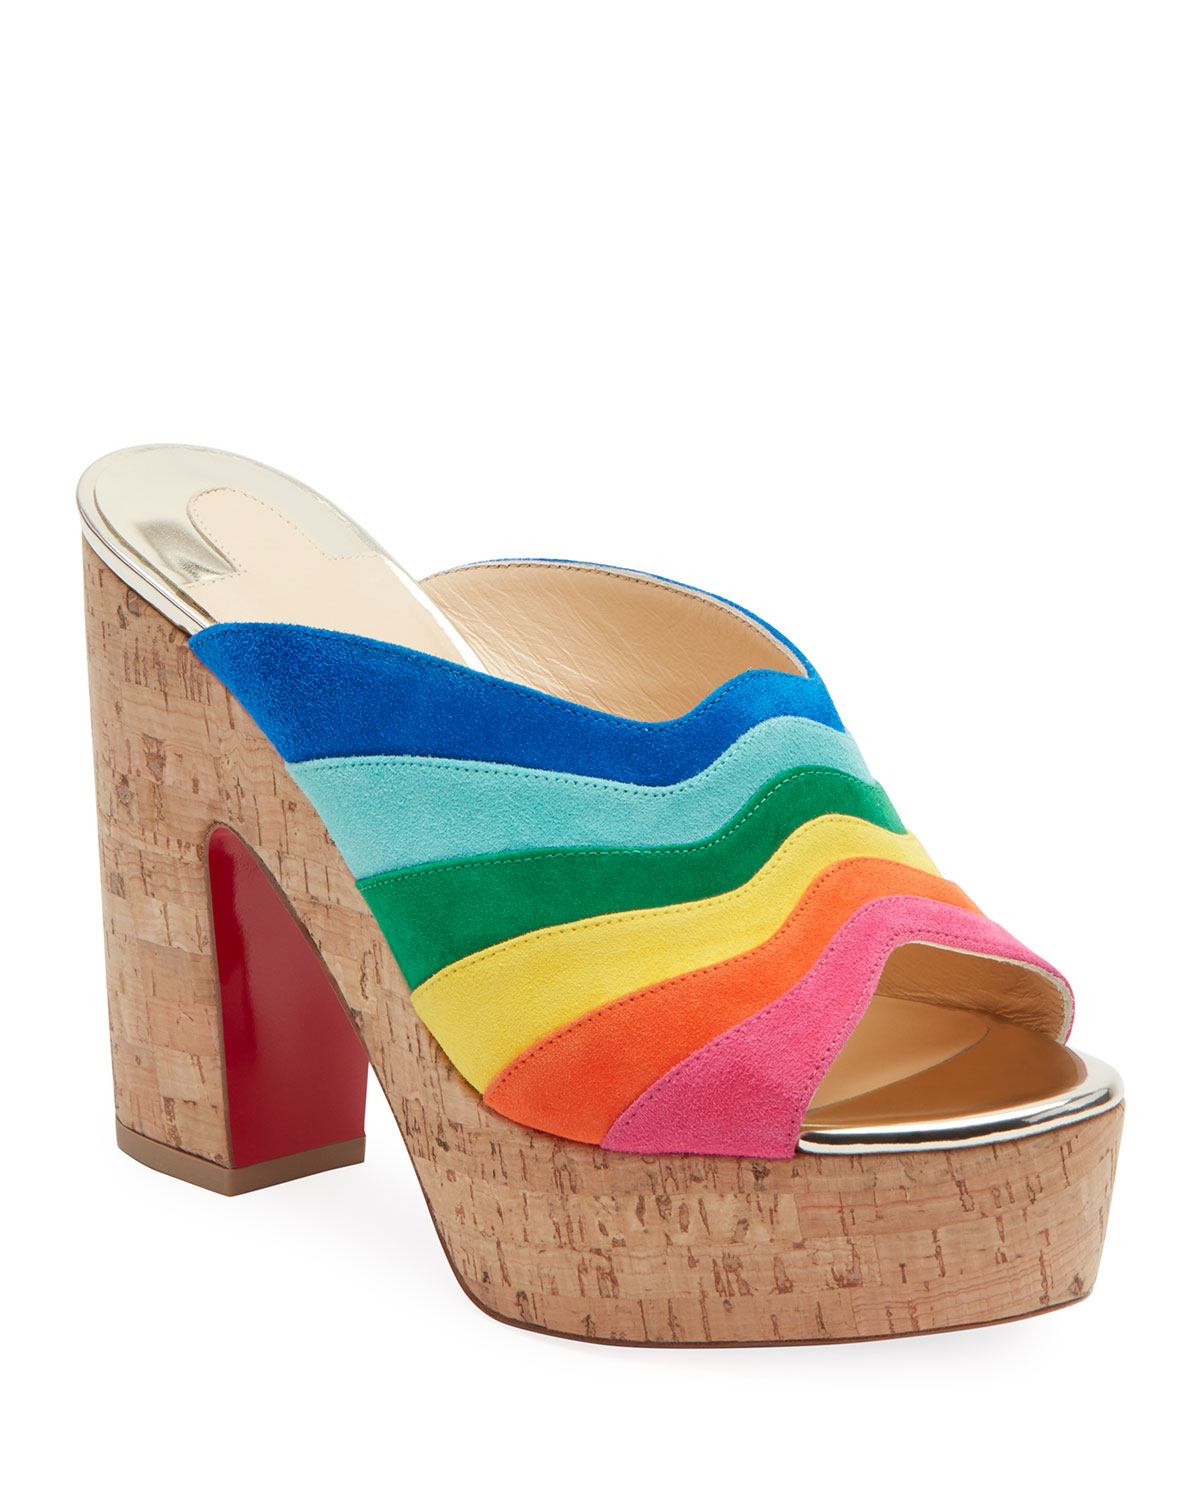 e4567bd2ae12 Christian Louboutin Sister Rainbow Suede Red Sole Slide Sandals ...